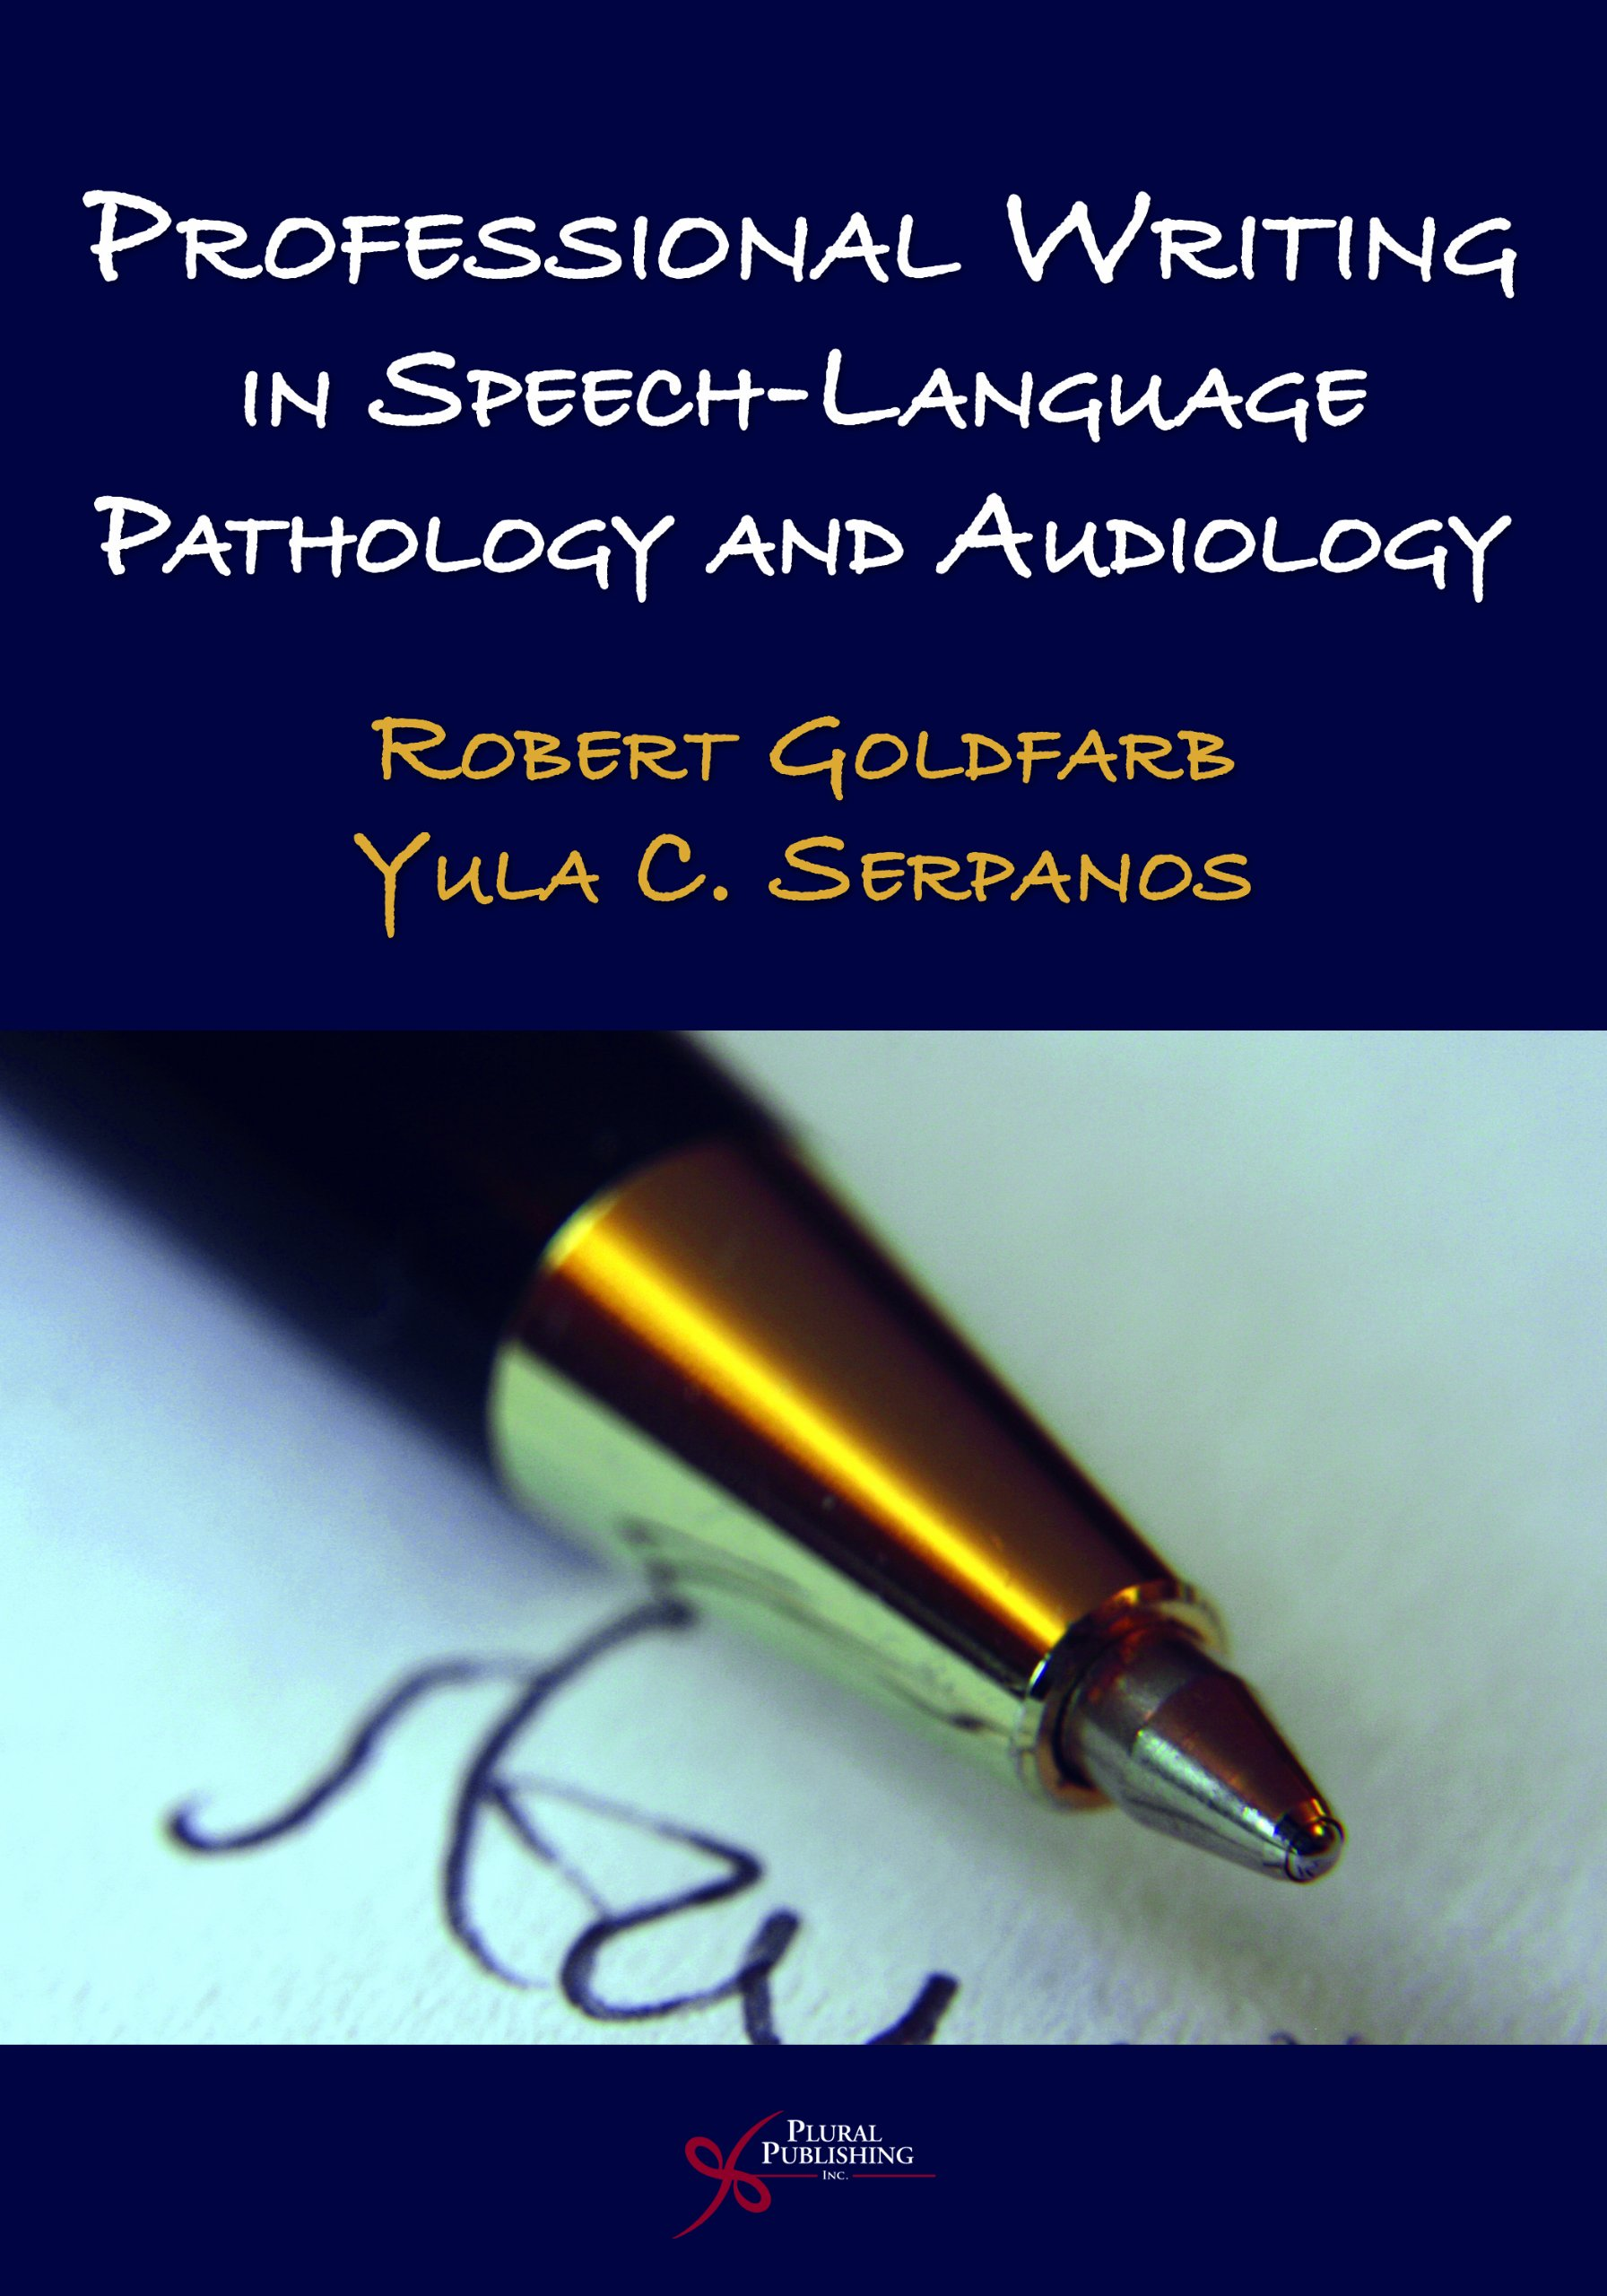 Professional Writing in Speech-Language Pathology and Audiology by Brand: Plural Publishing Inc